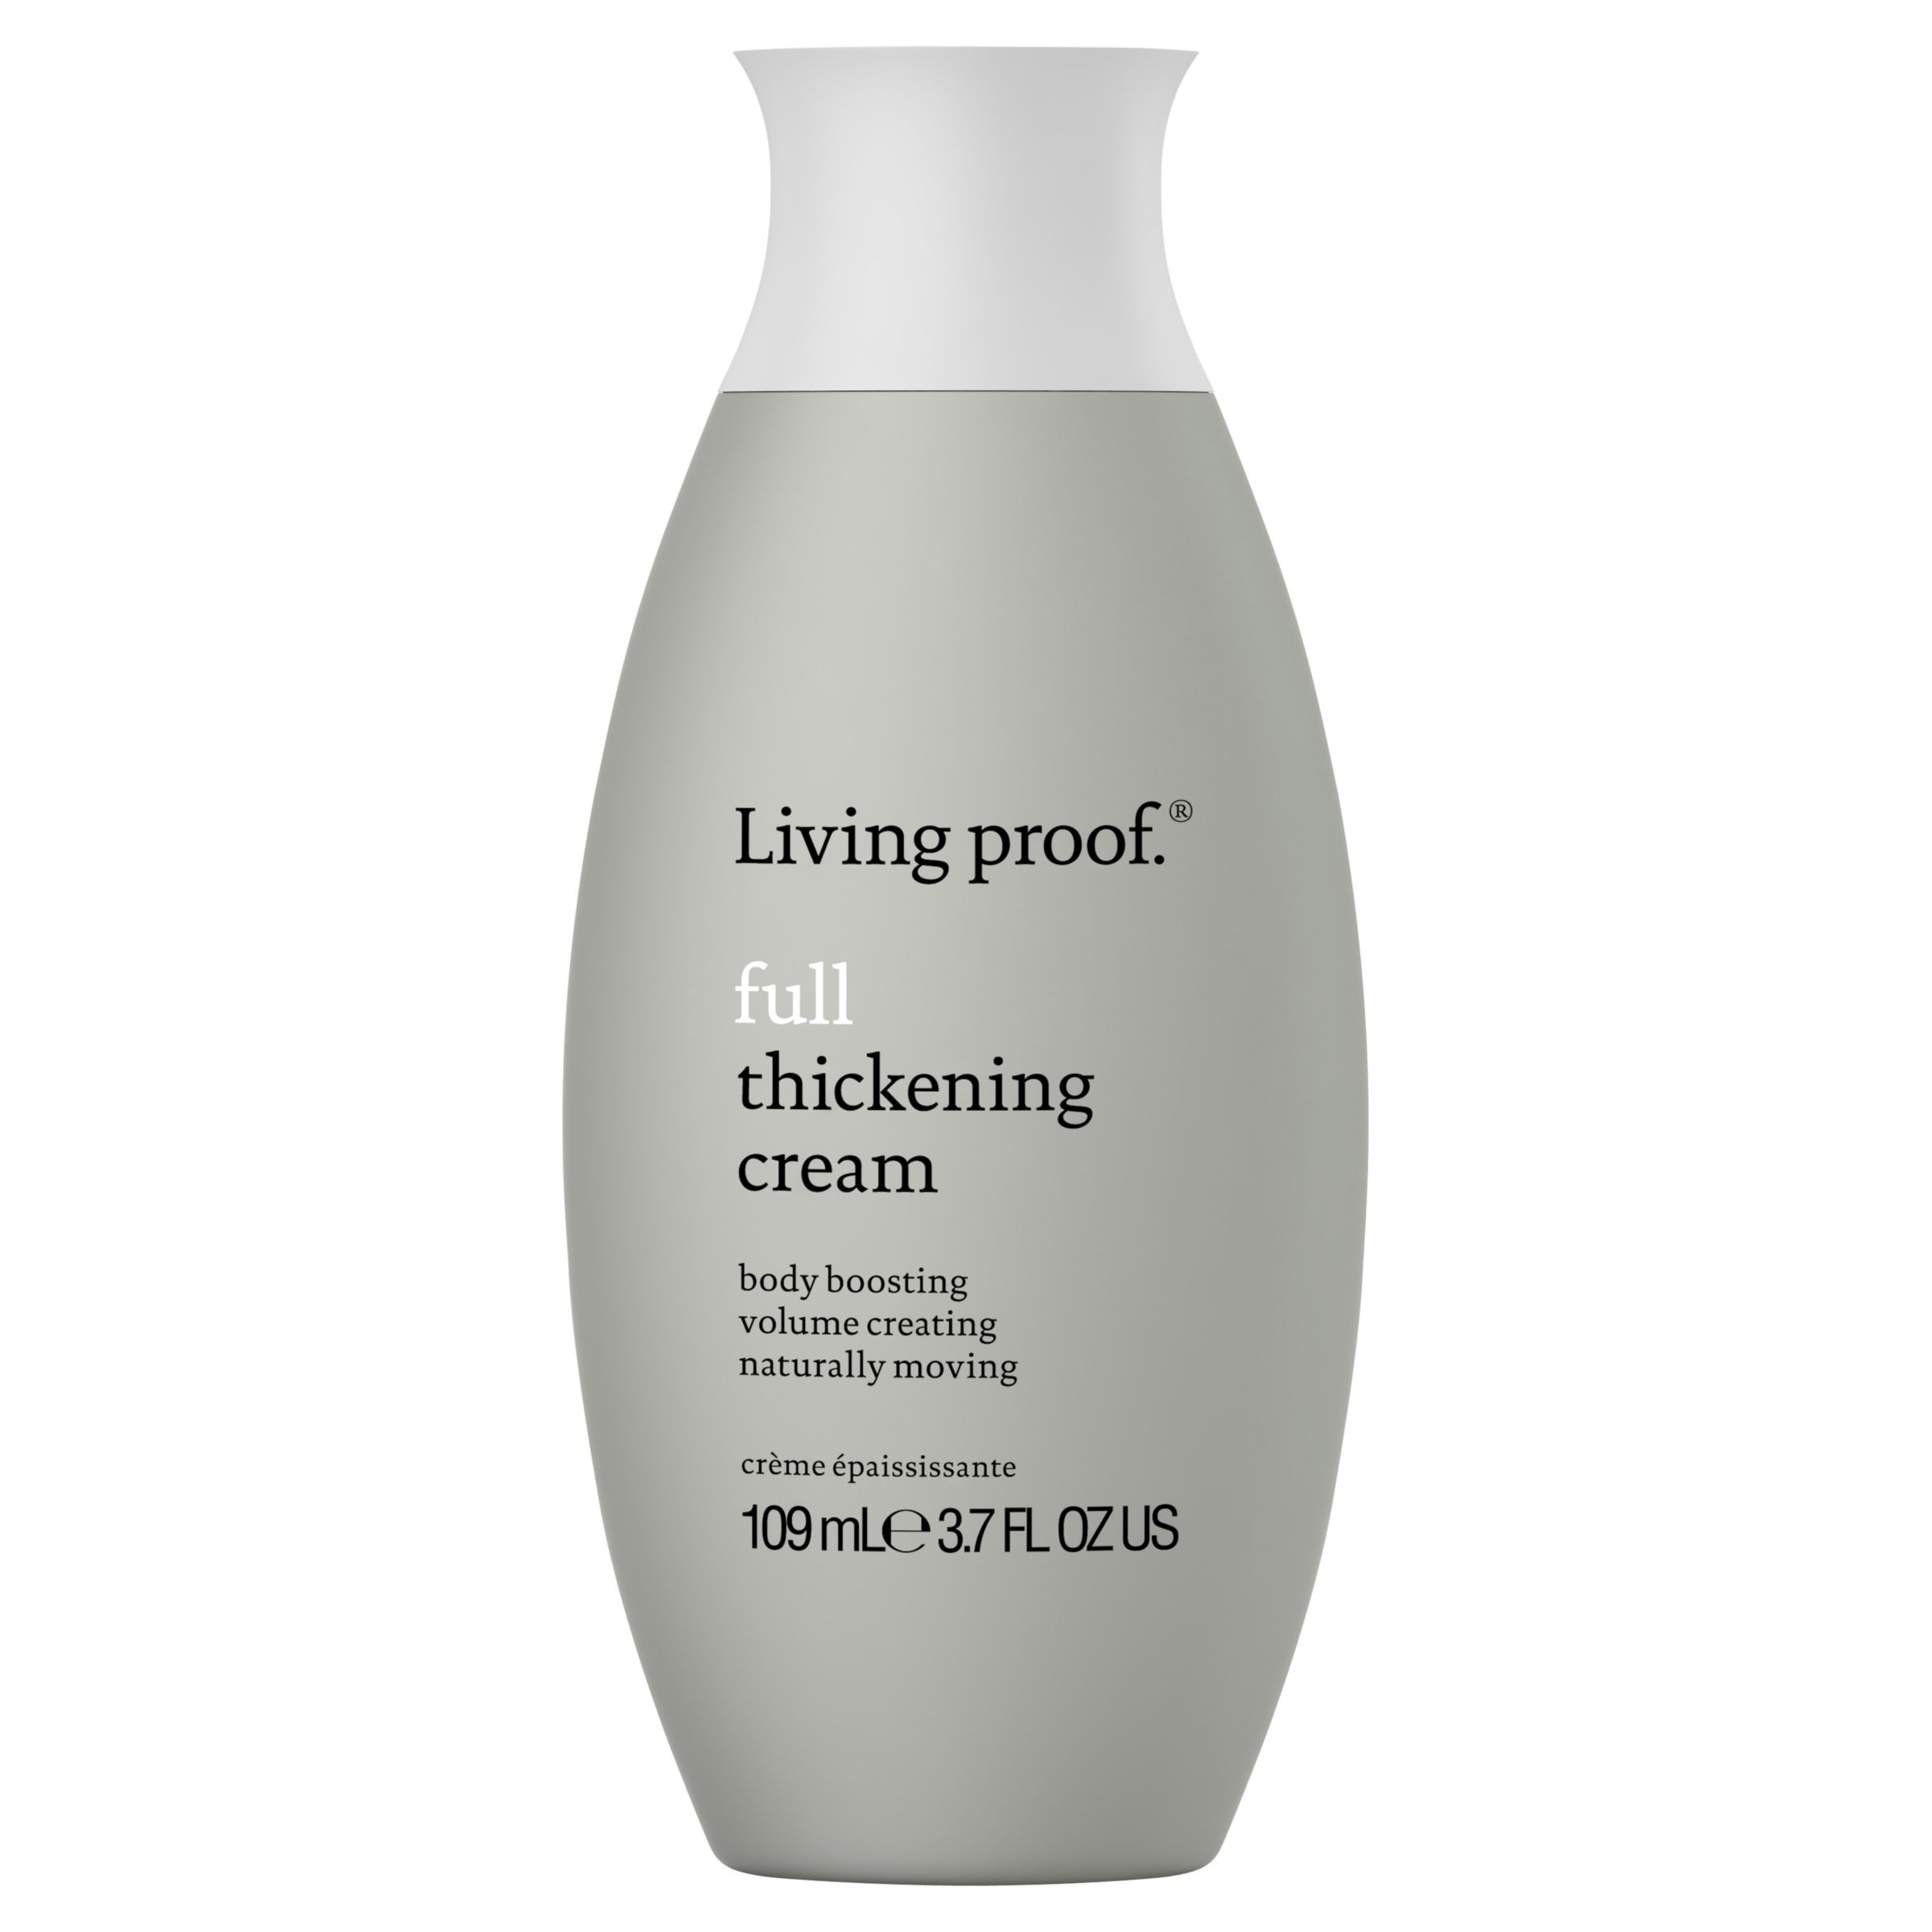 Living Proof Living Proof Full Thickening Cream, 109ml